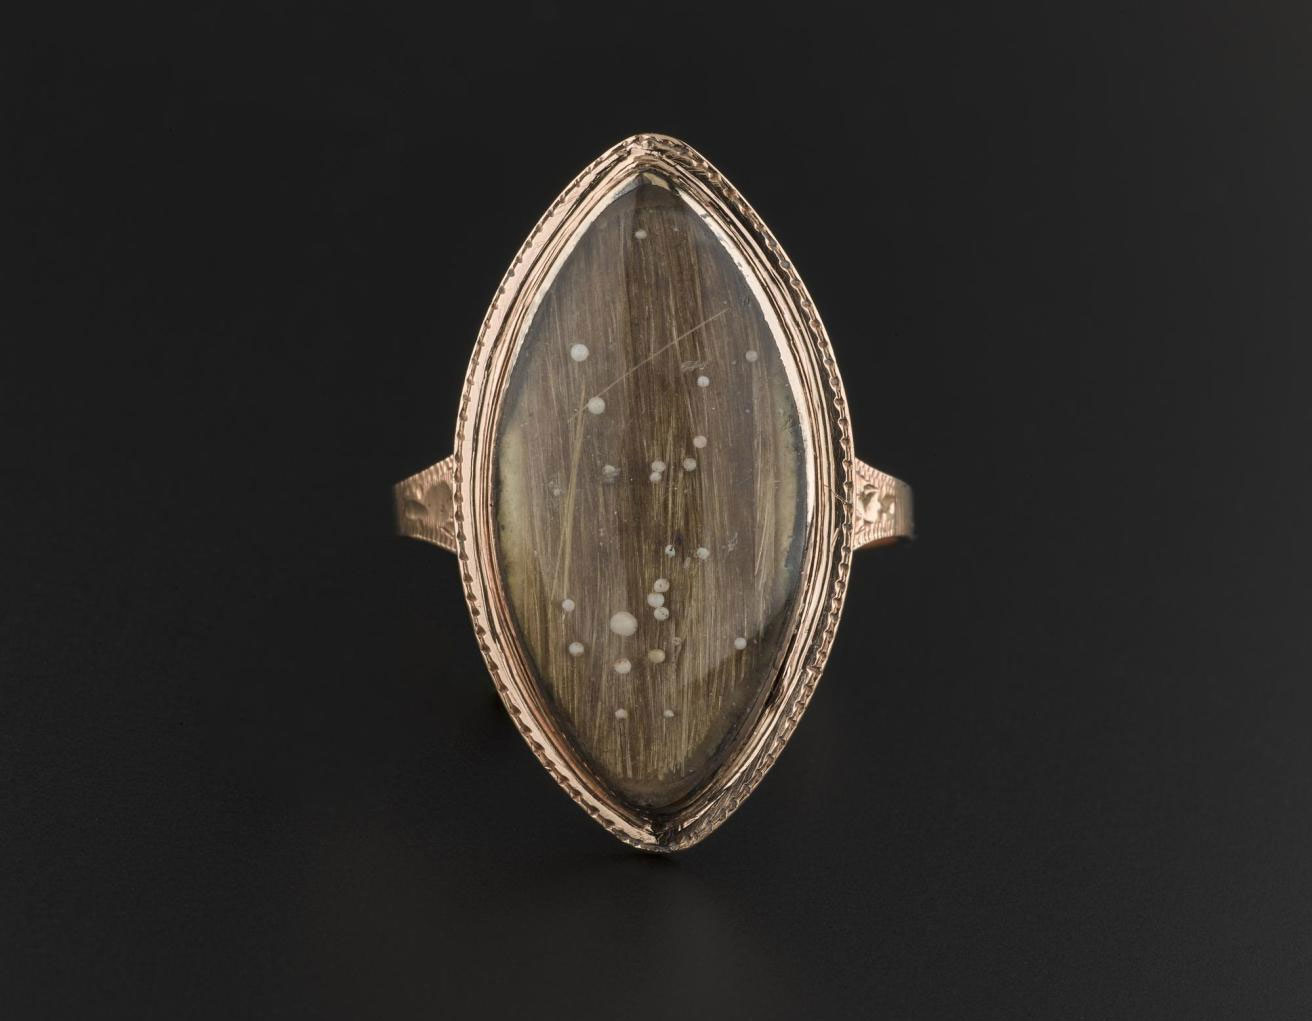 Containing a lock of Prince Charles' hair, this ring was thought to have been gifted by the Prince to Alexander Stuart of Invernayle. The ring also once also contained seed pearls forming the initials 'C.R'.